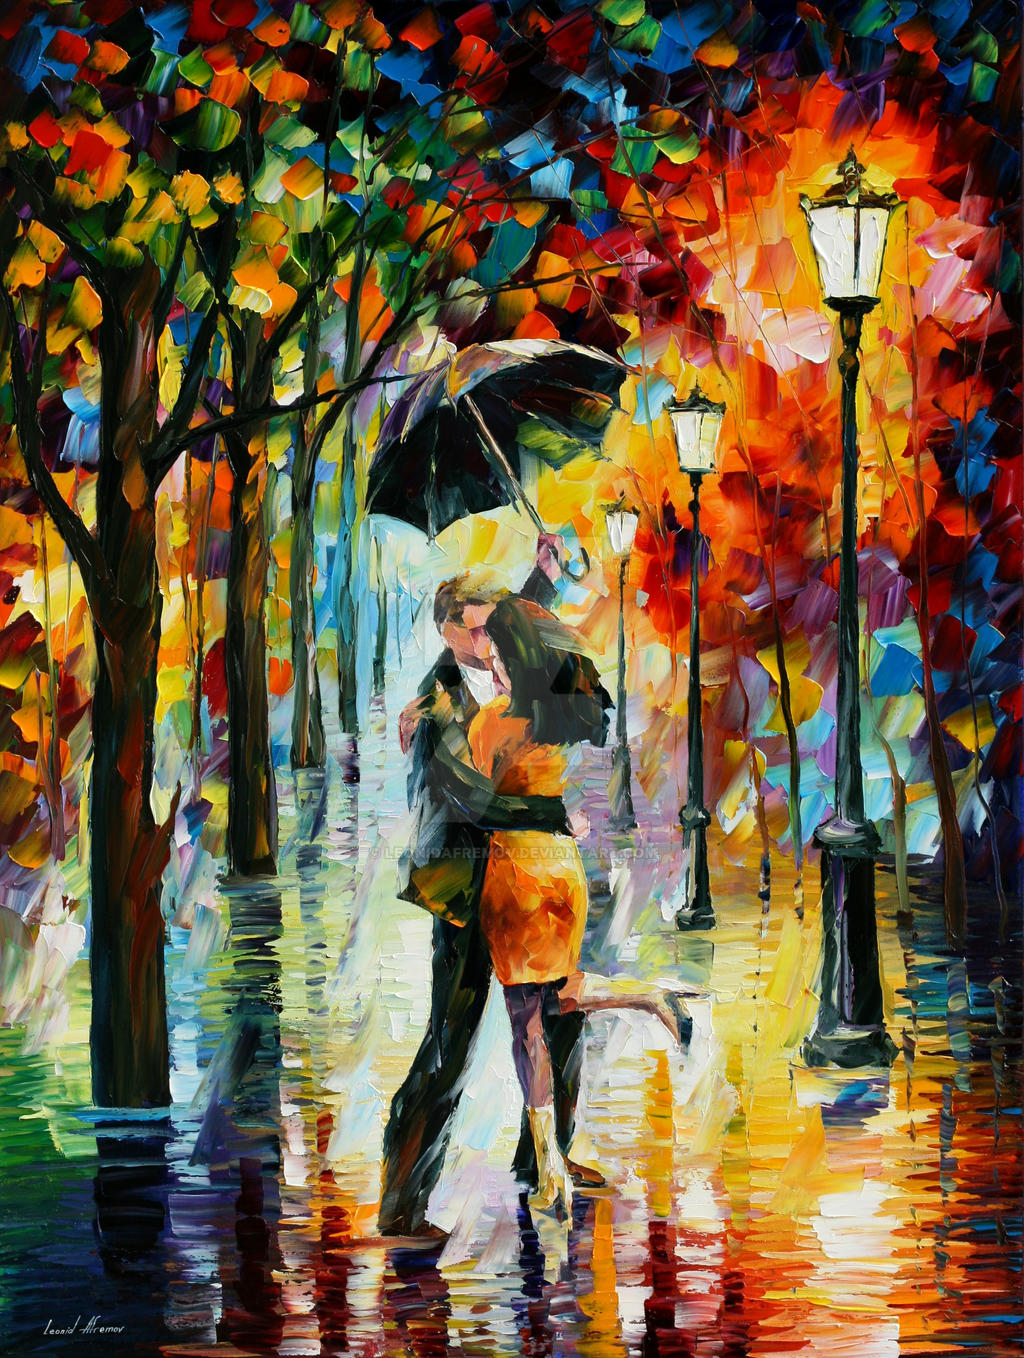 dance under the rain by leonid afremov by leonidafremov on deviantart. Black Bedroom Furniture Sets. Home Design Ideas